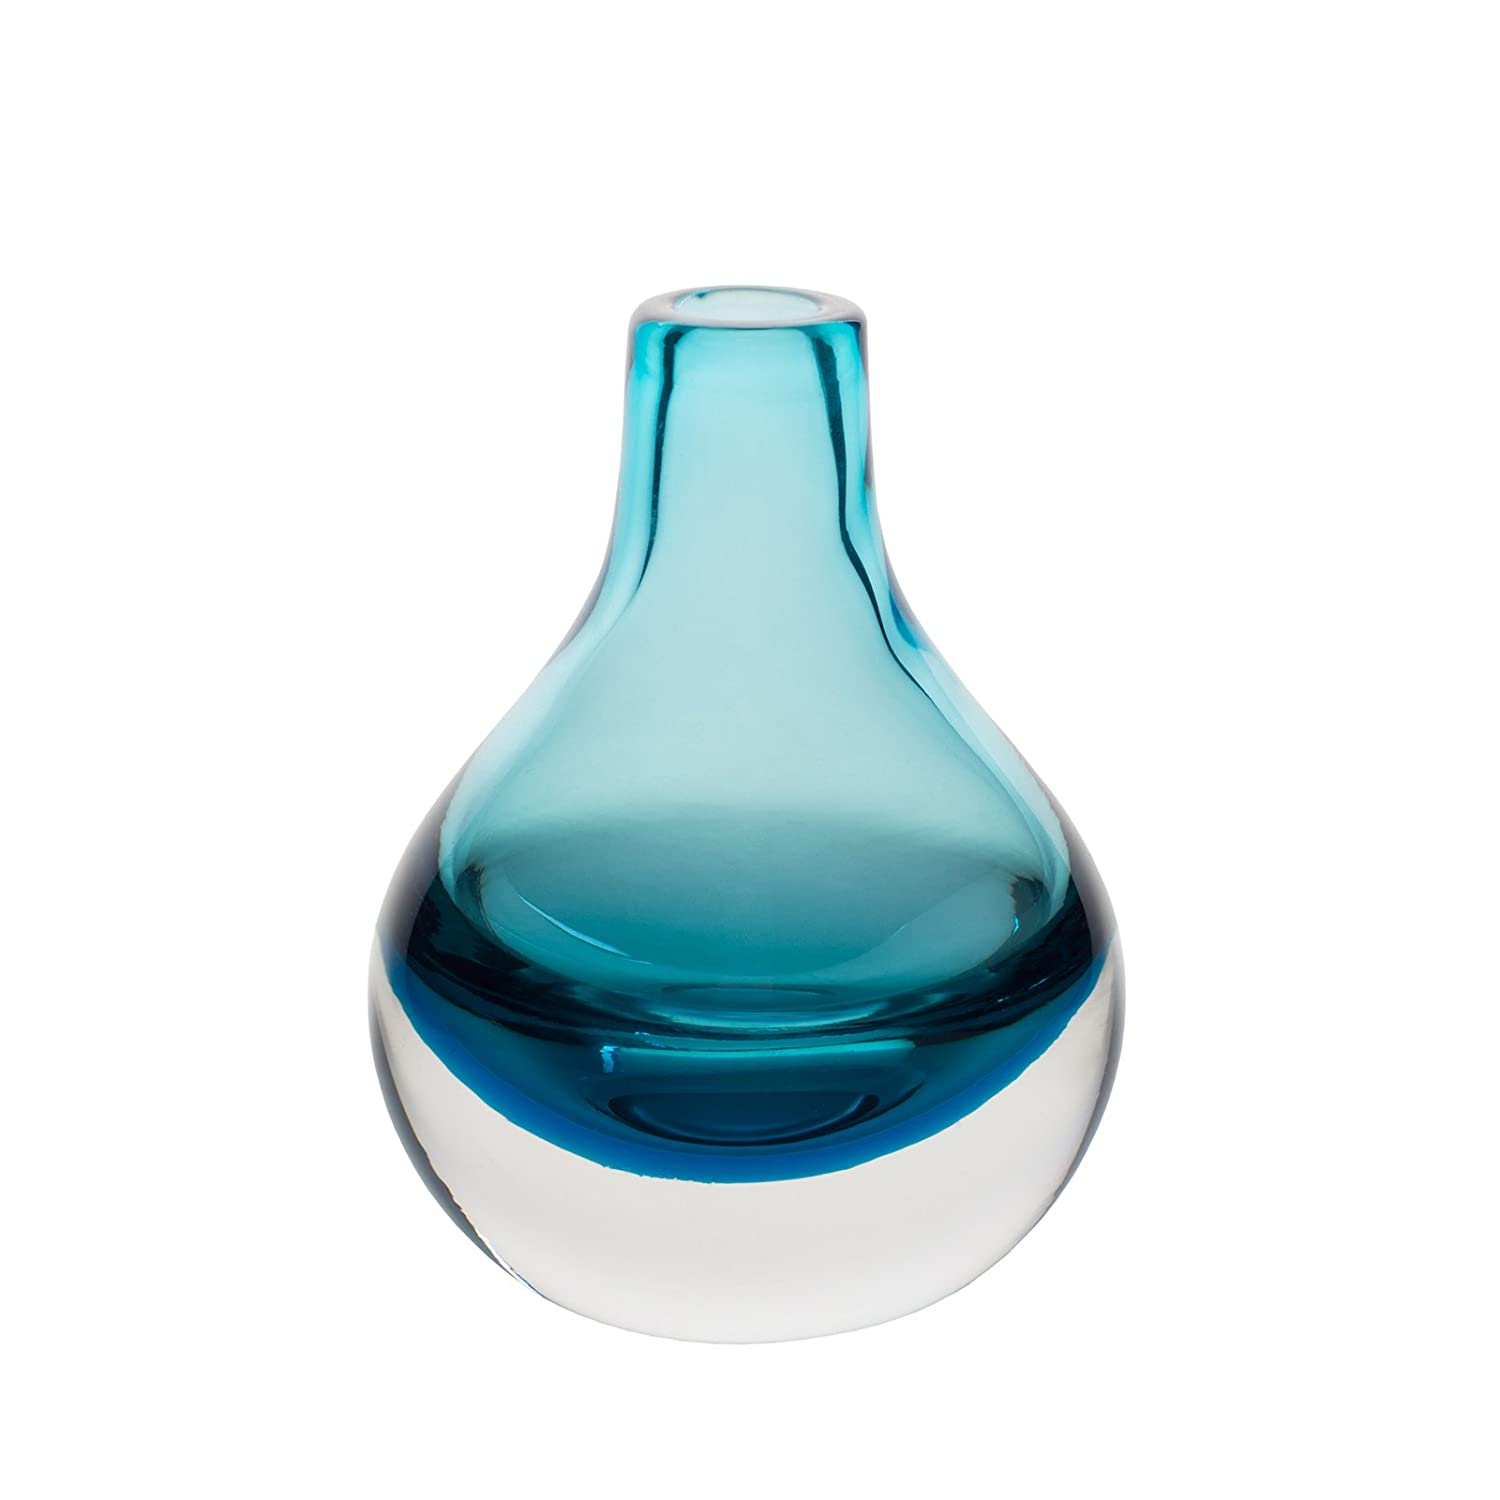 Vases amazon home decor casamotion home decor accent vase hand blown art solid color glass bud vase blue reviewsmspy